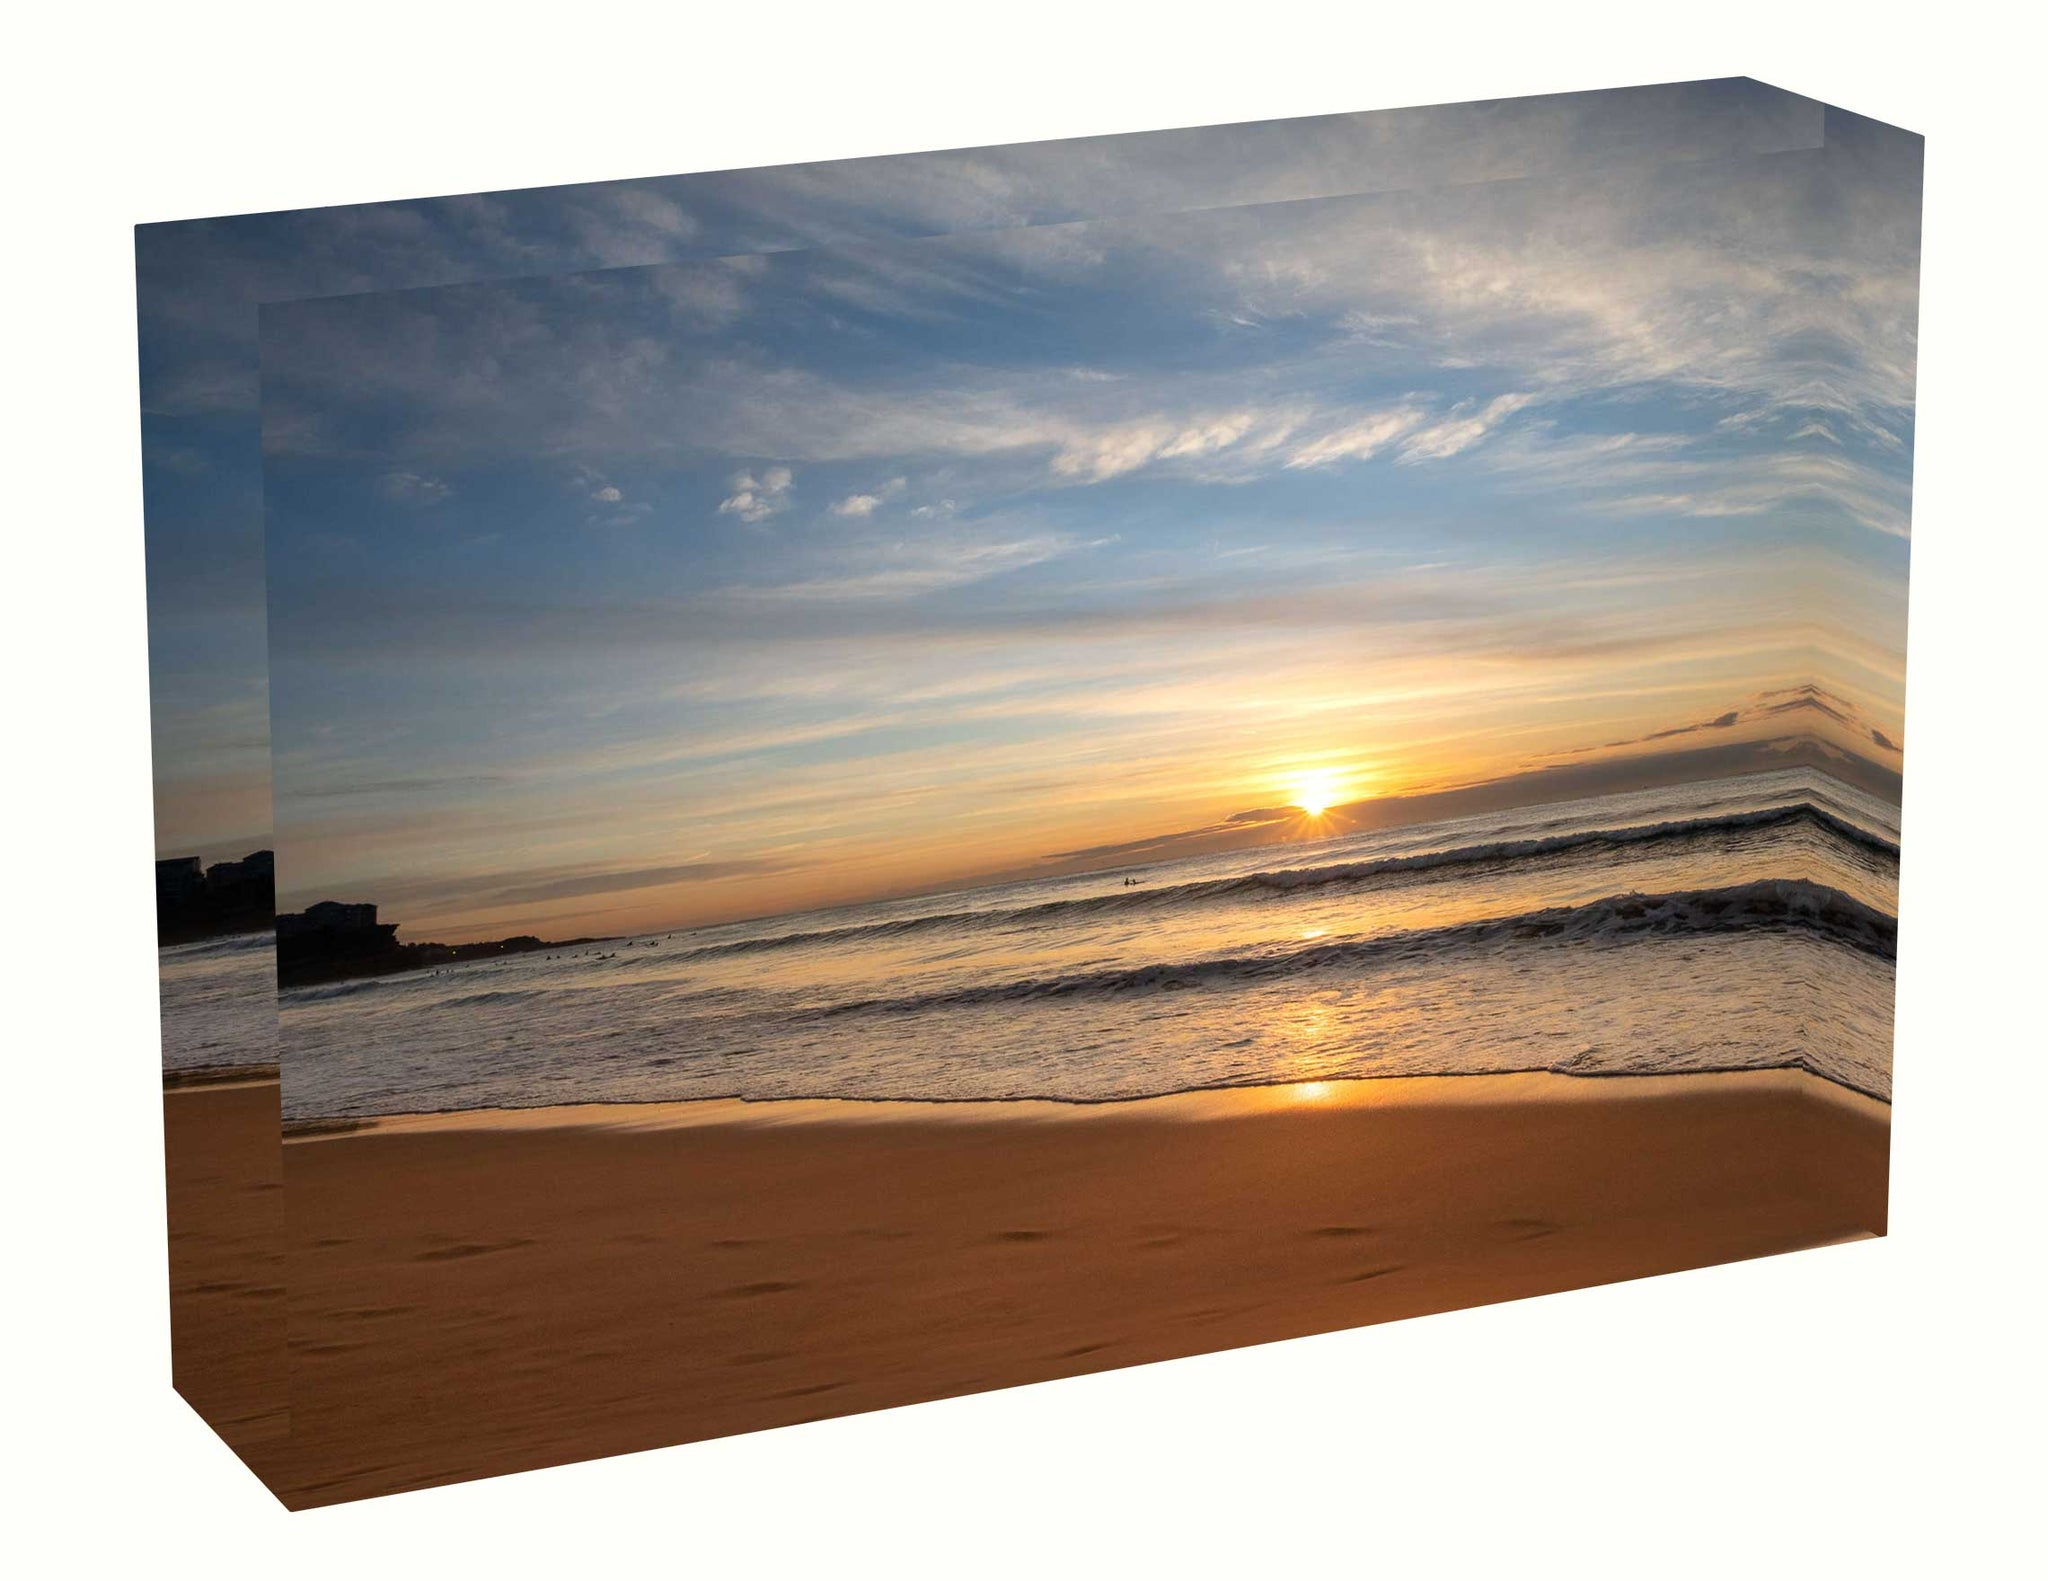 Acrylic block sunrise photo 22th July 2020 Manly beach, Sydney